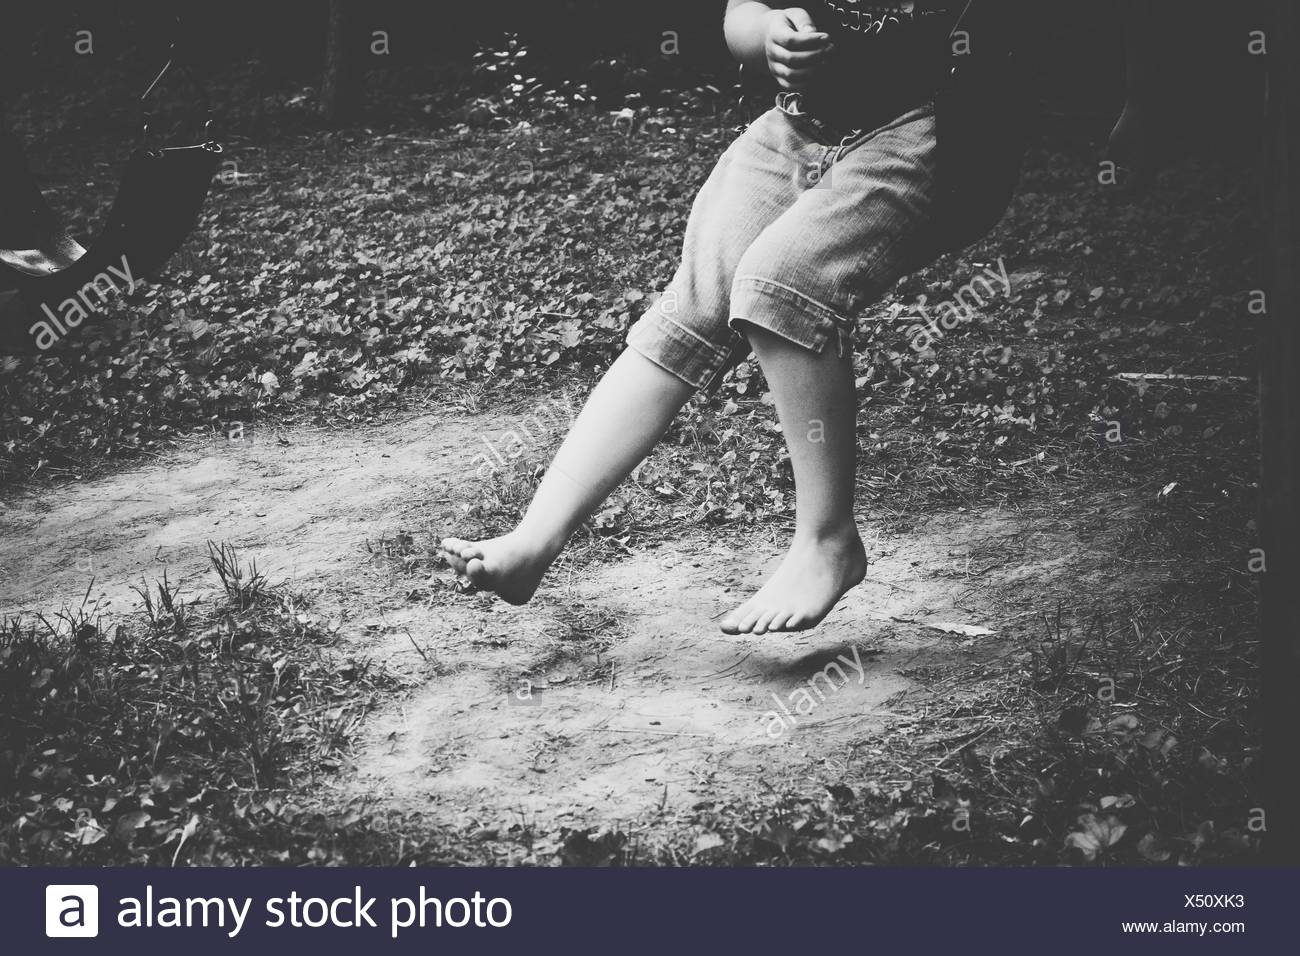 Low Section Of A Boy Jumping Outdoors - Stock Image